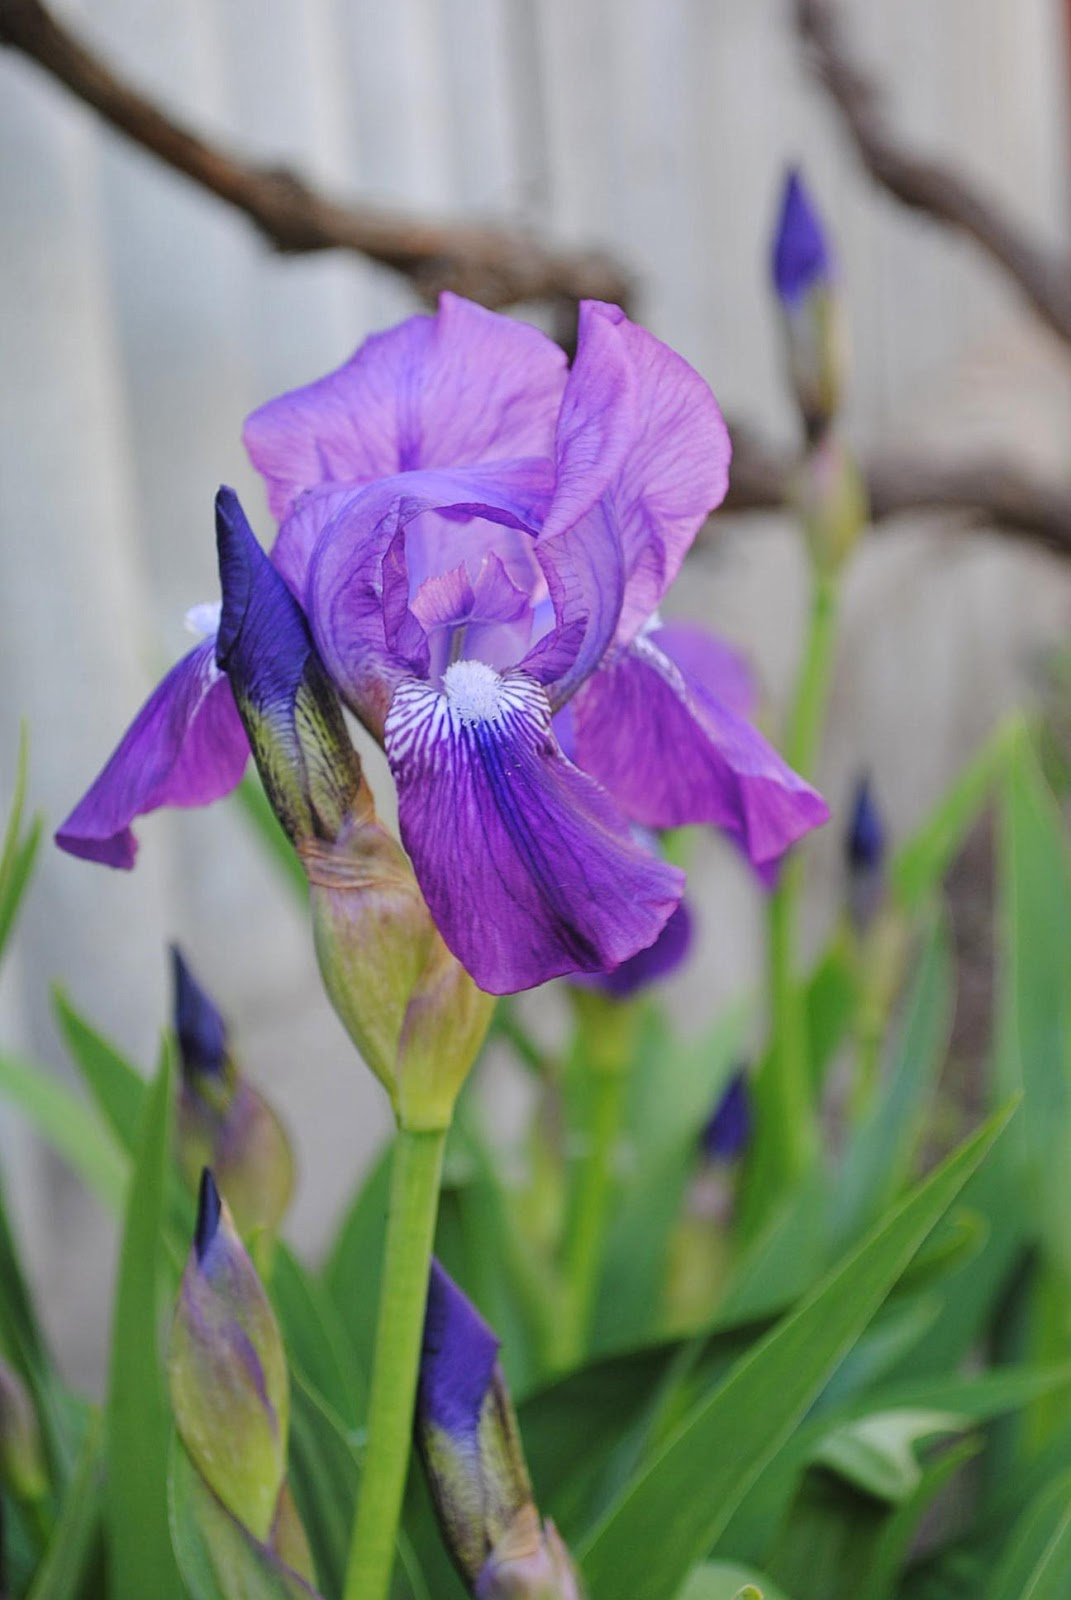 flowers, garden, garden, iris, violet, house, our house, Narcissus, london, tulip, spring, Odessa